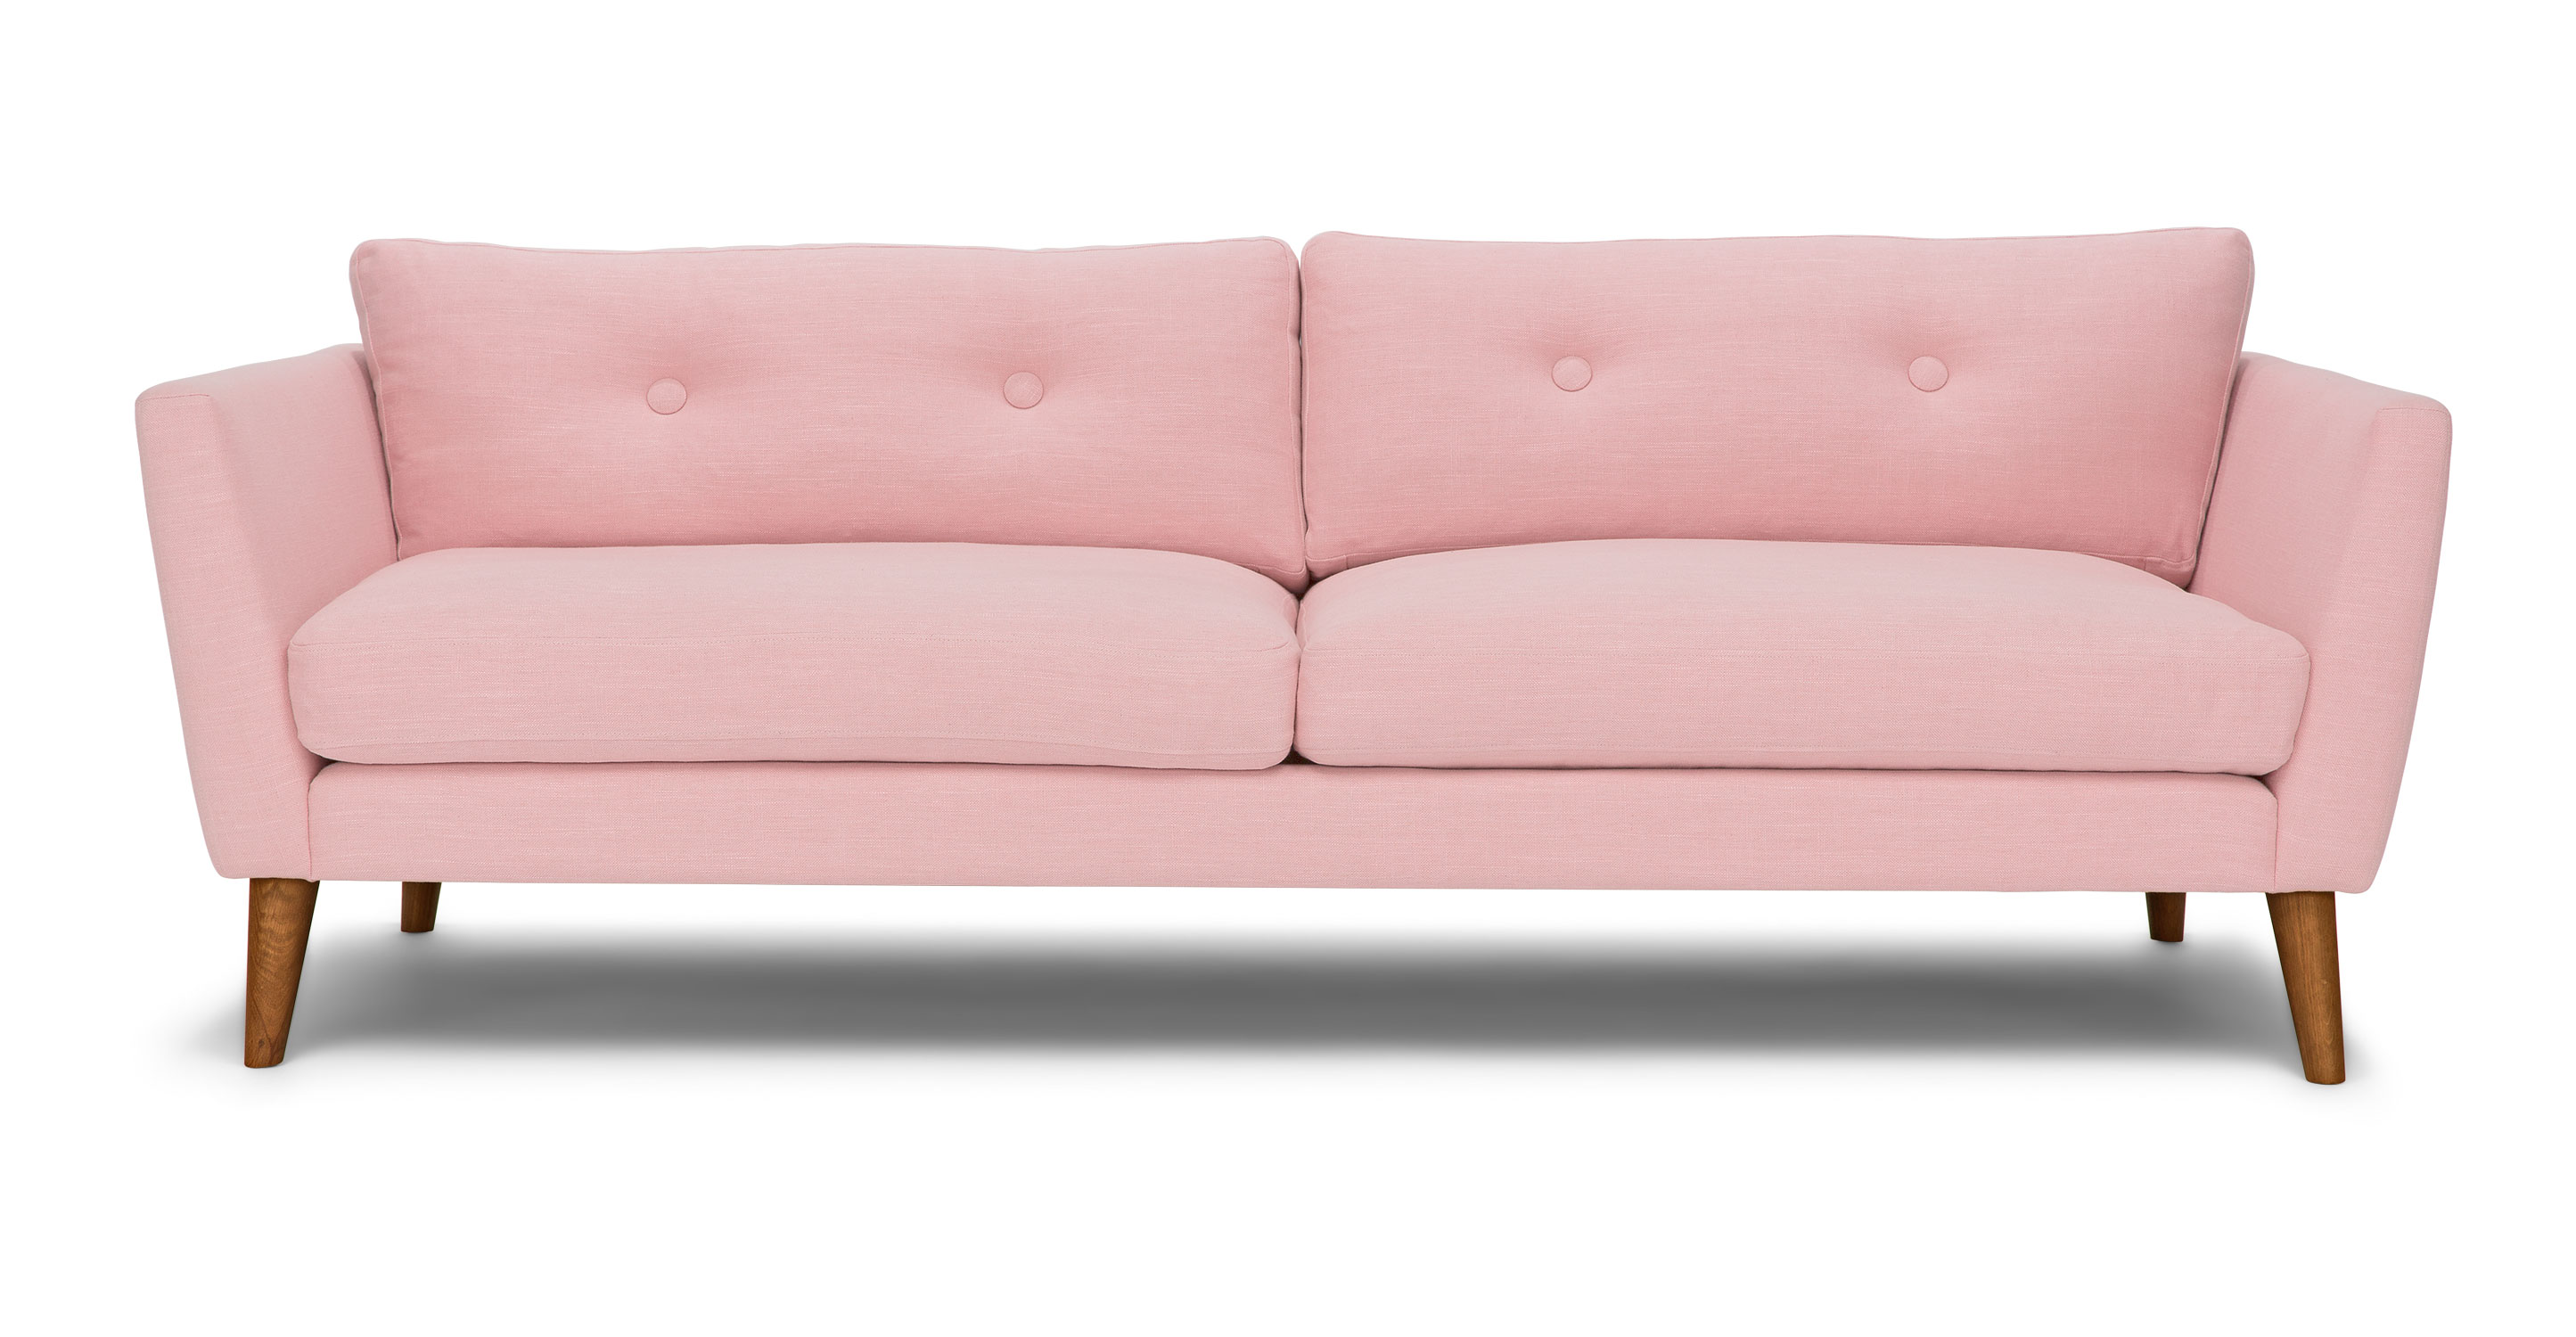 velvet sofas melbourne ashley furniture canada emil quartz rose sofa | article